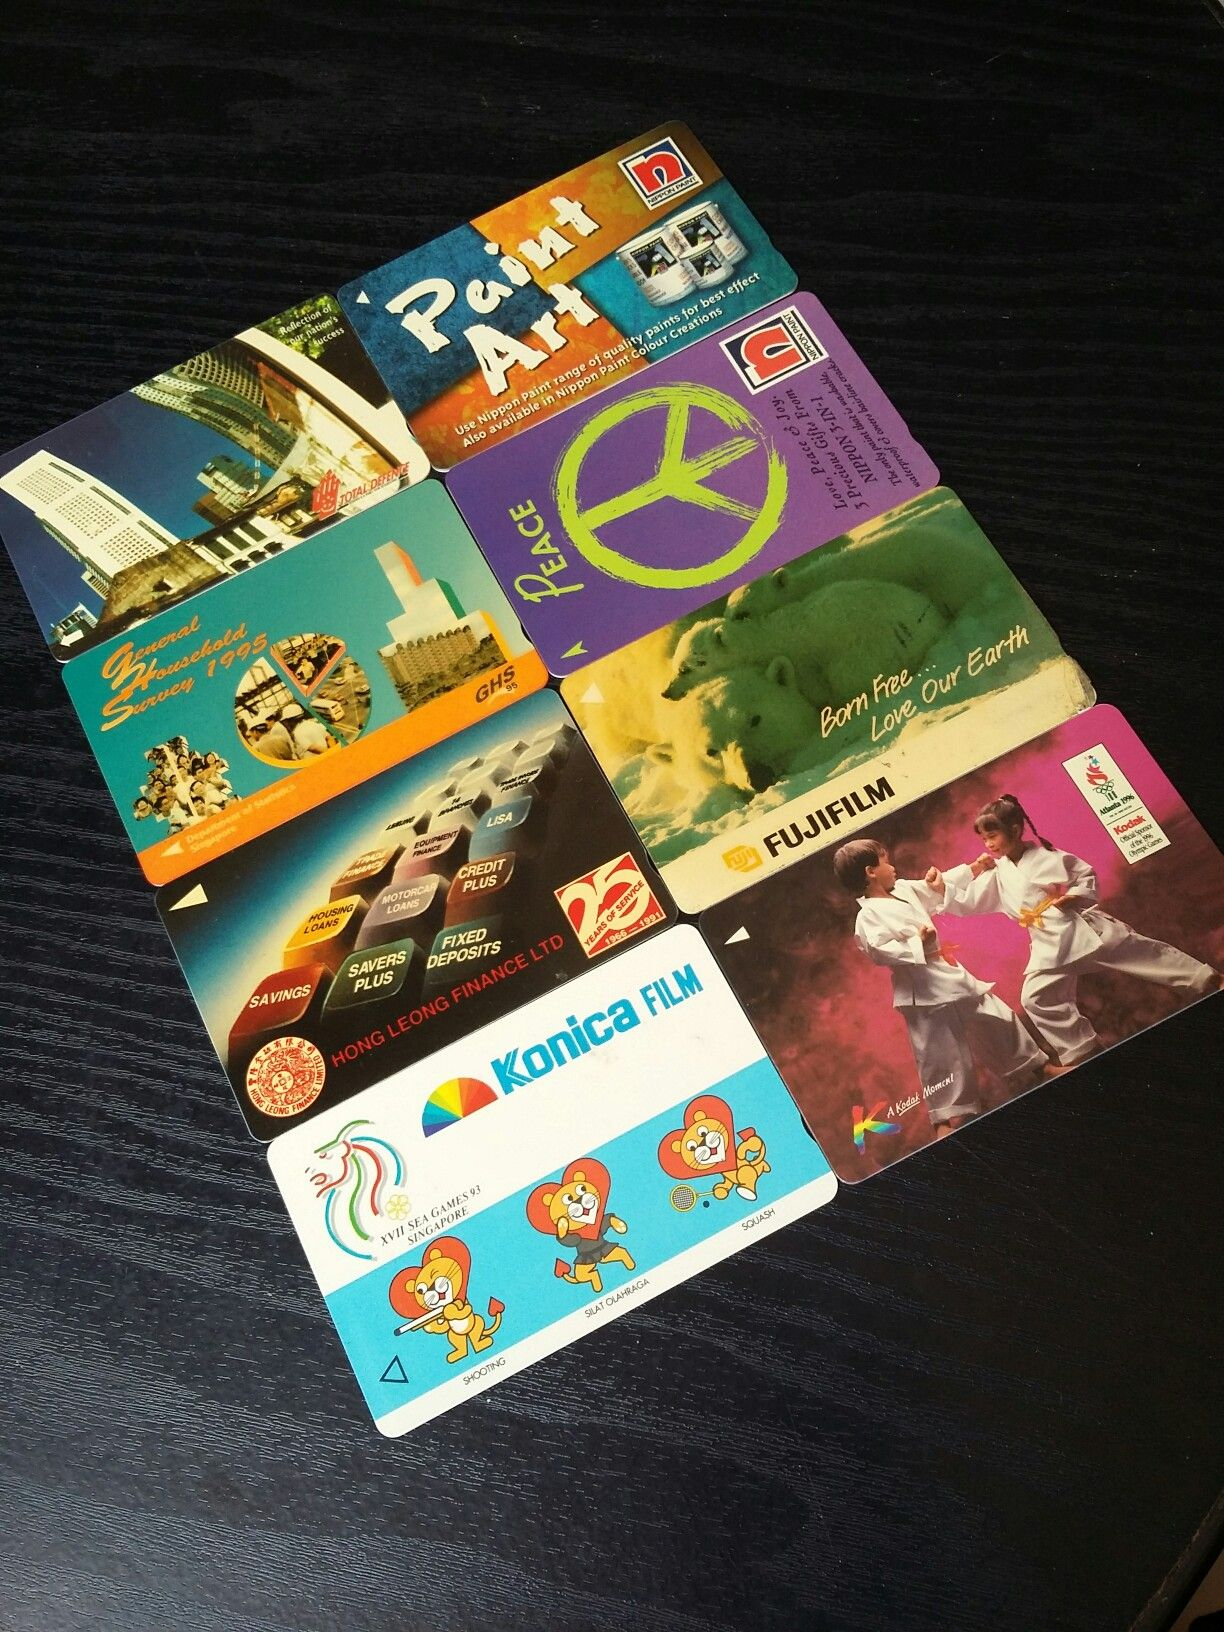 Public phone cards used in 80s - 90s | Singapore | Phone